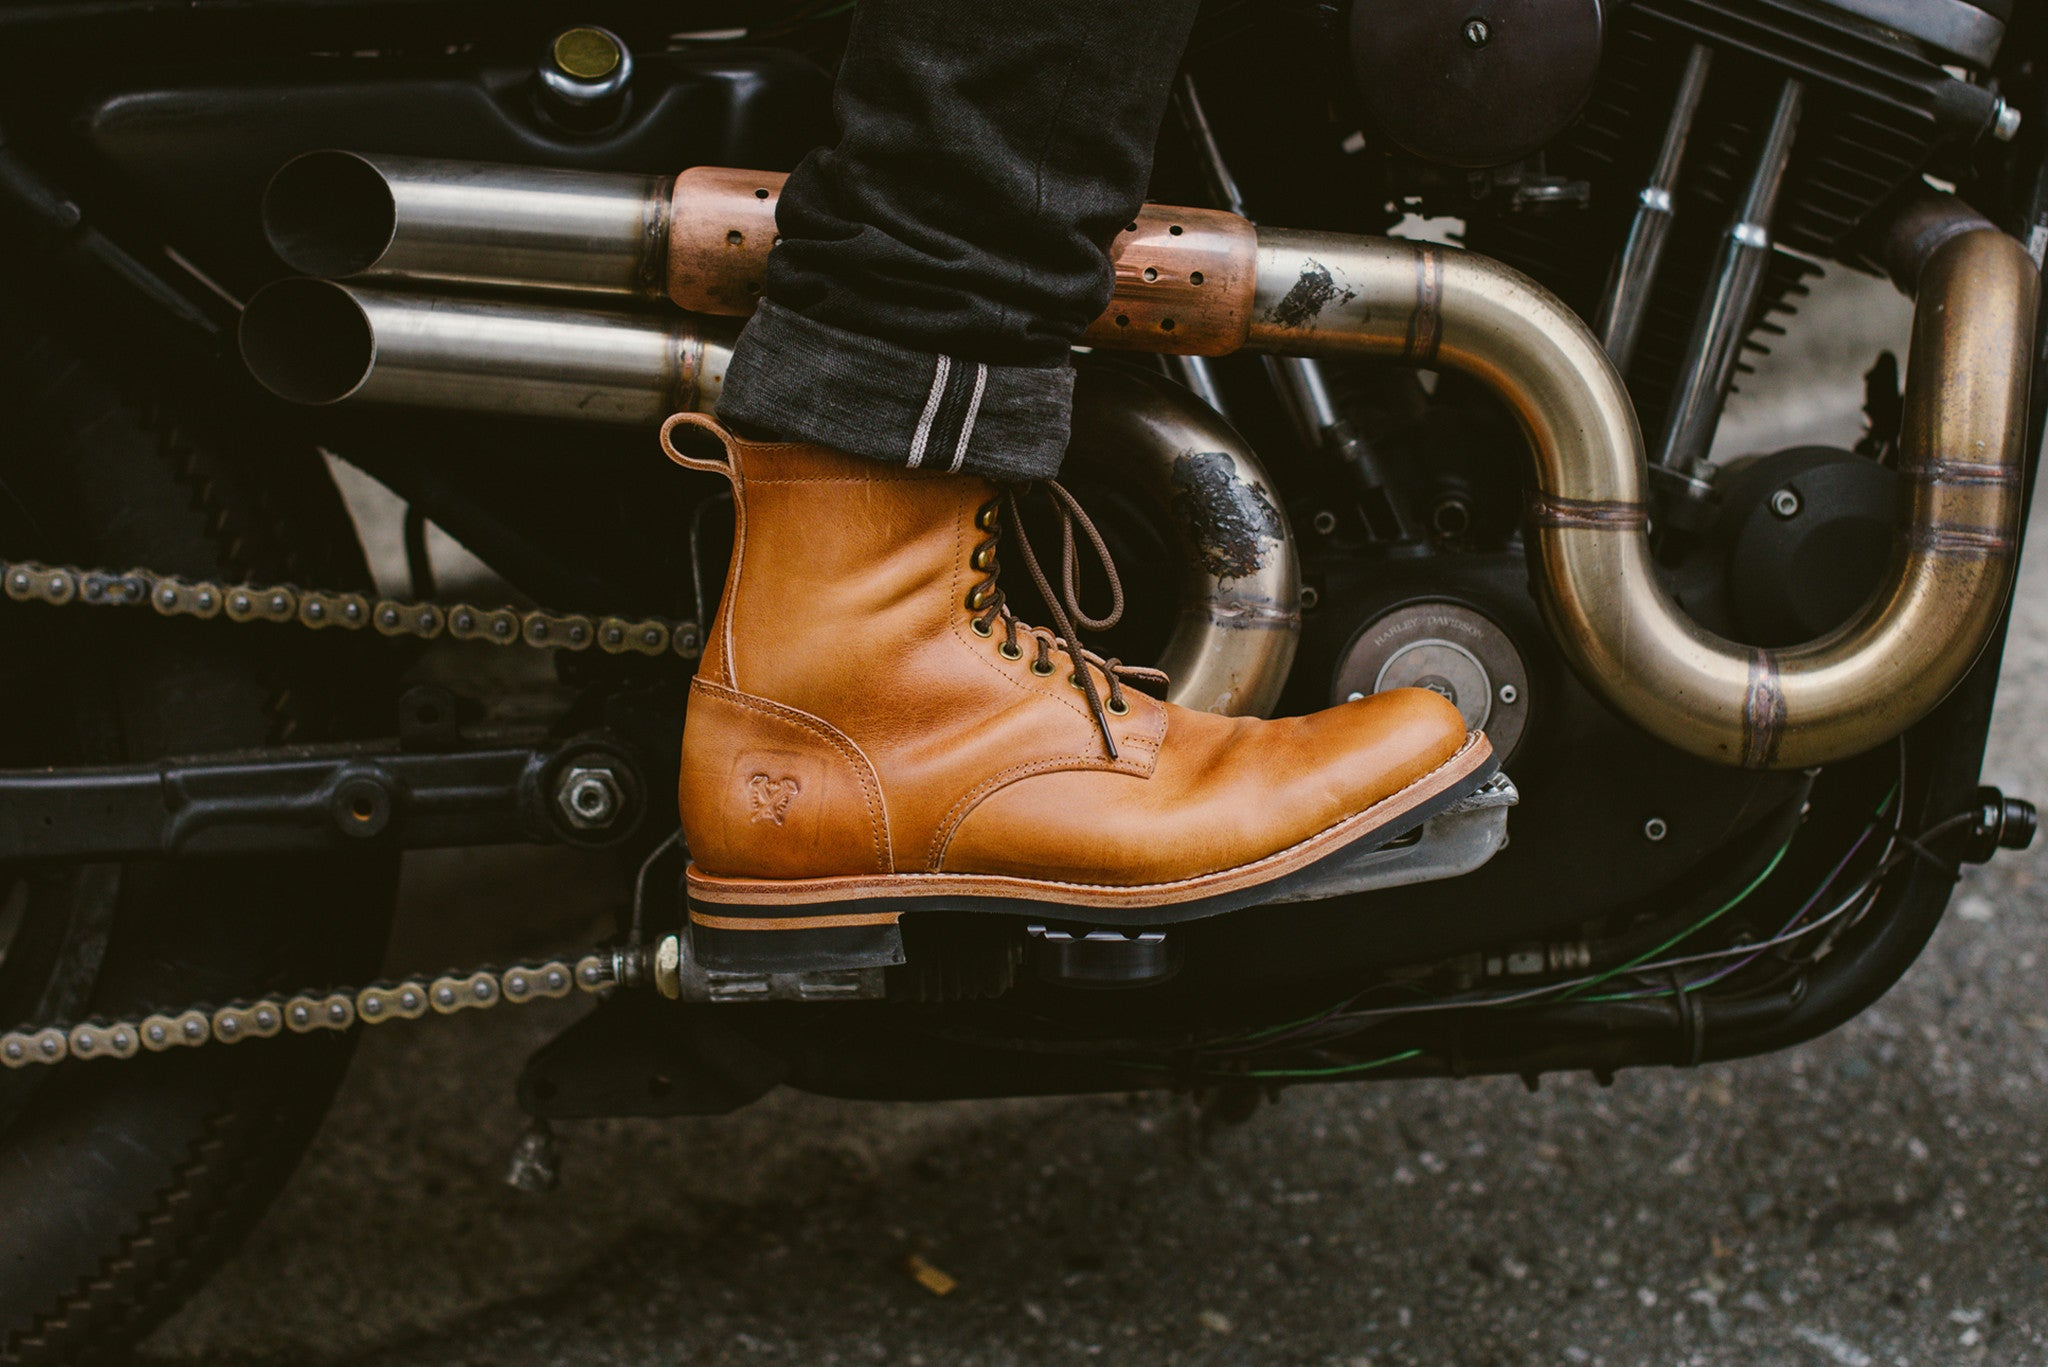 1907A(lpine) Derby Boot - September 22, 2016 Release